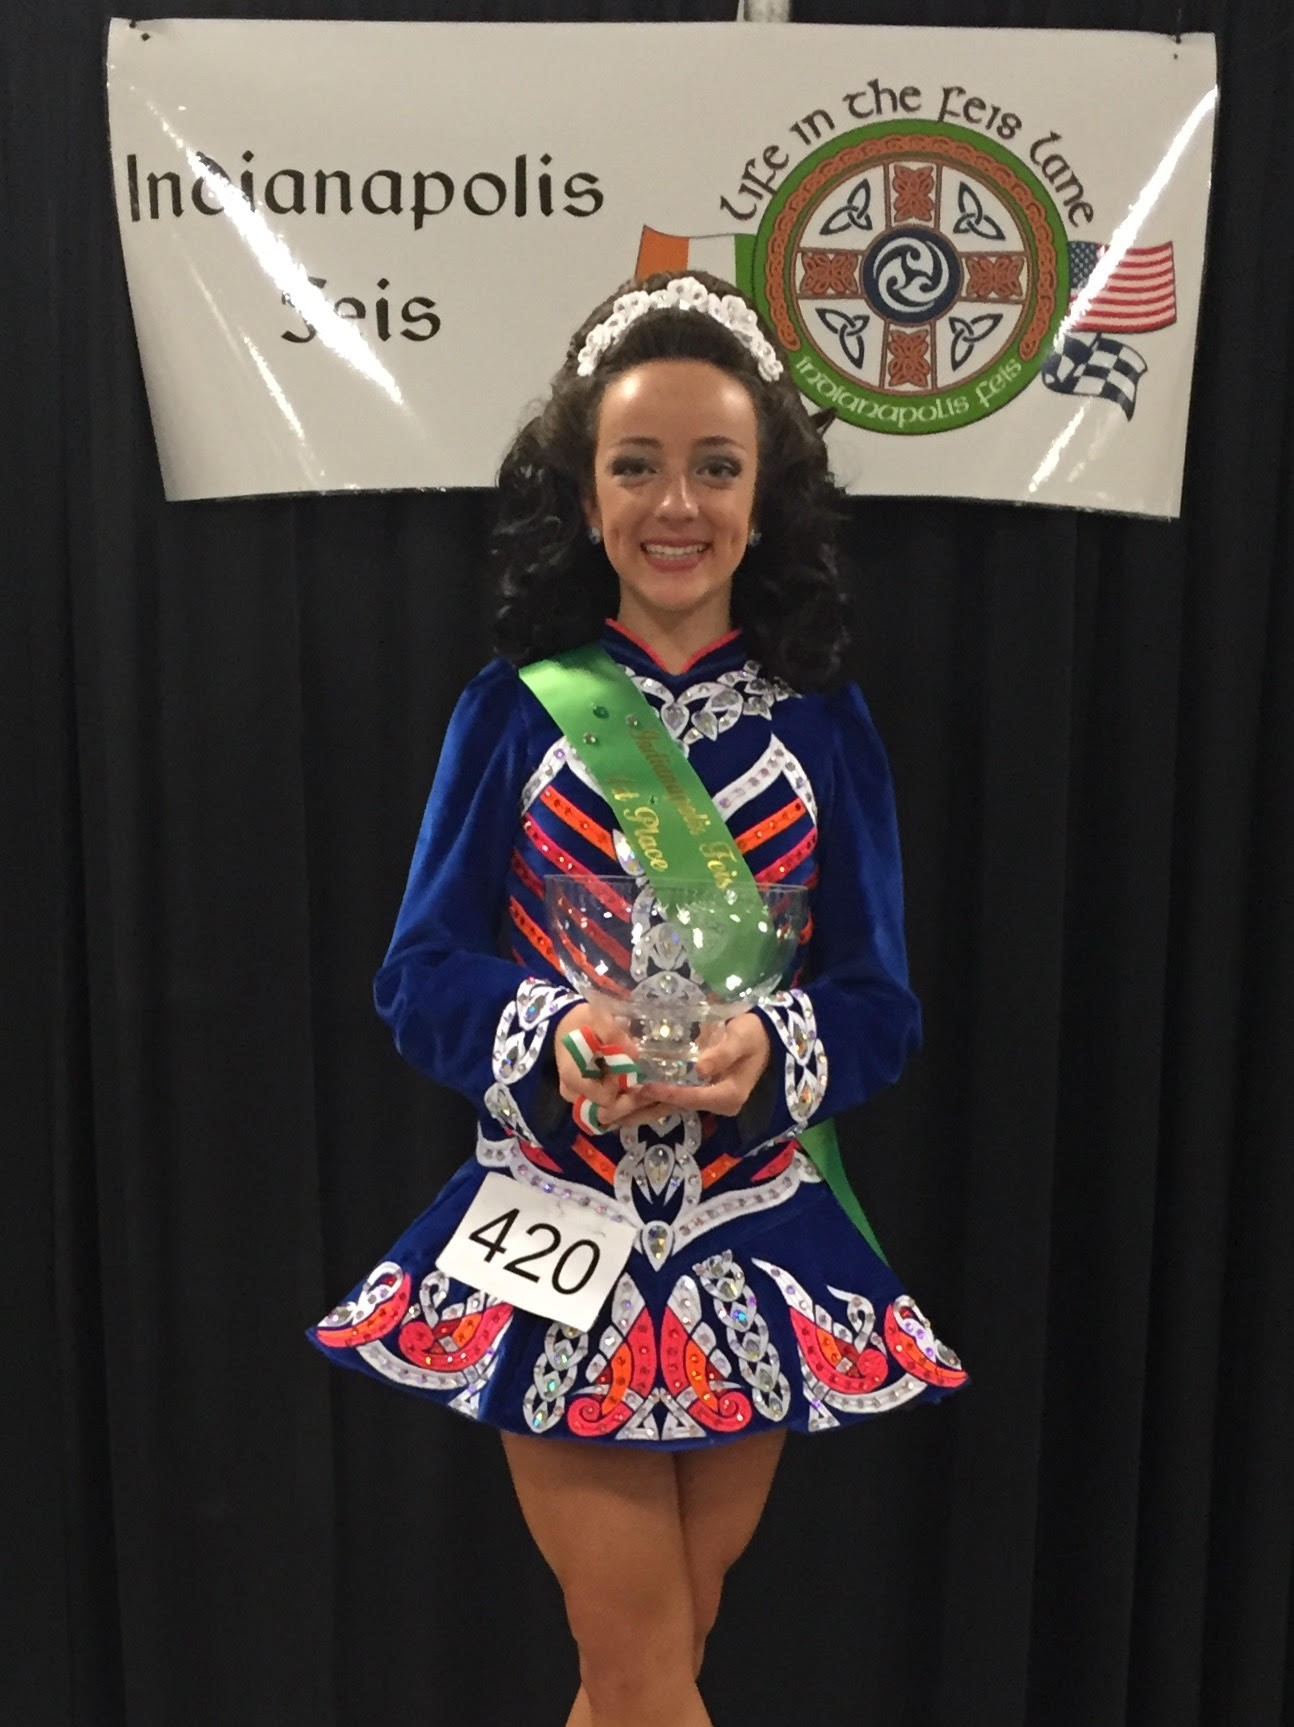 SUA's Hanna Hopple won first place in the Irish Dance Open Championship at the Indianapolis Feis